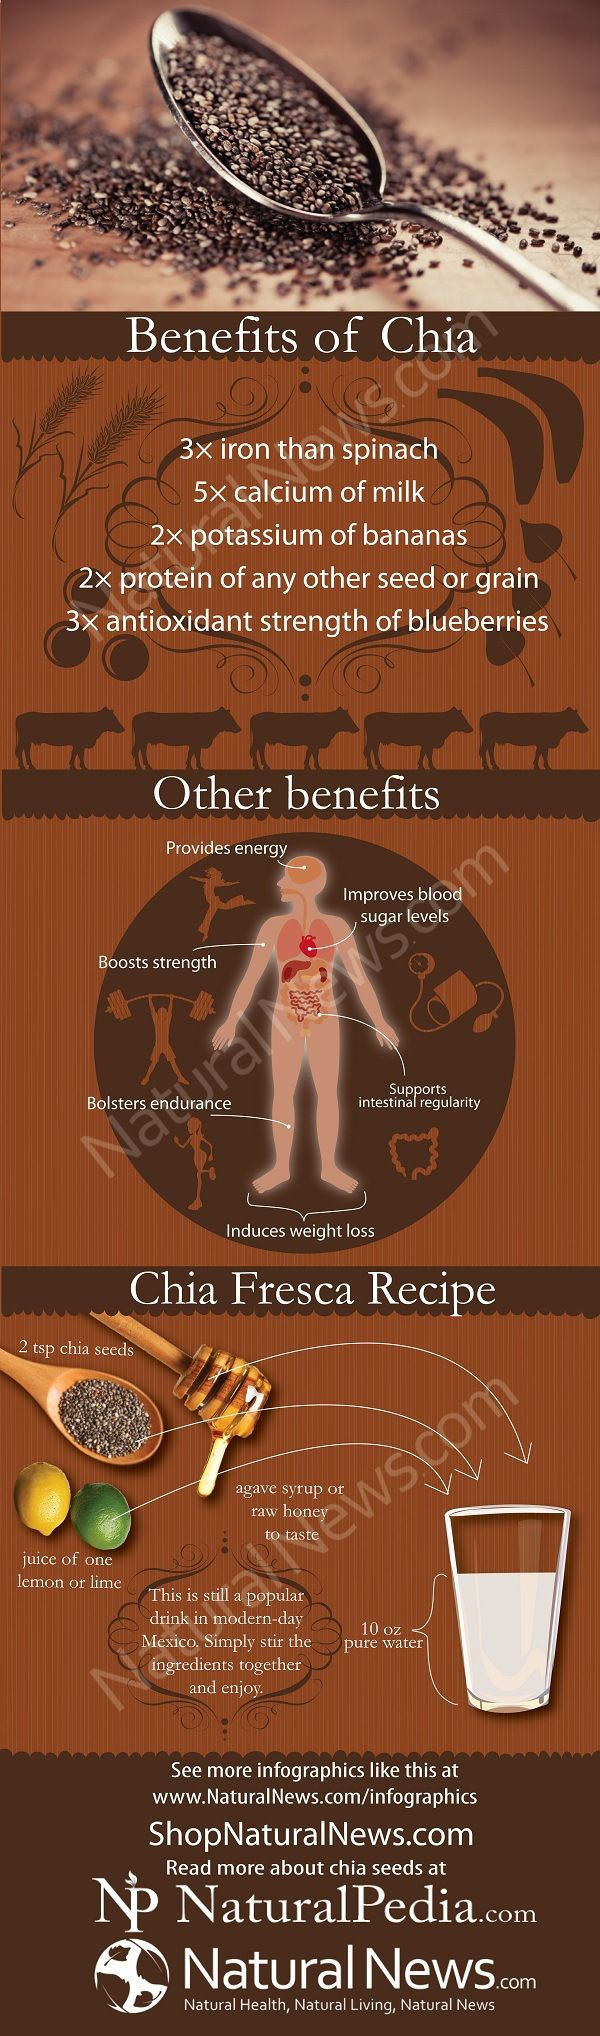 Chia seeds health benefits - http://www.infographicsfan.com/chia-seeds-health-benefits-2/